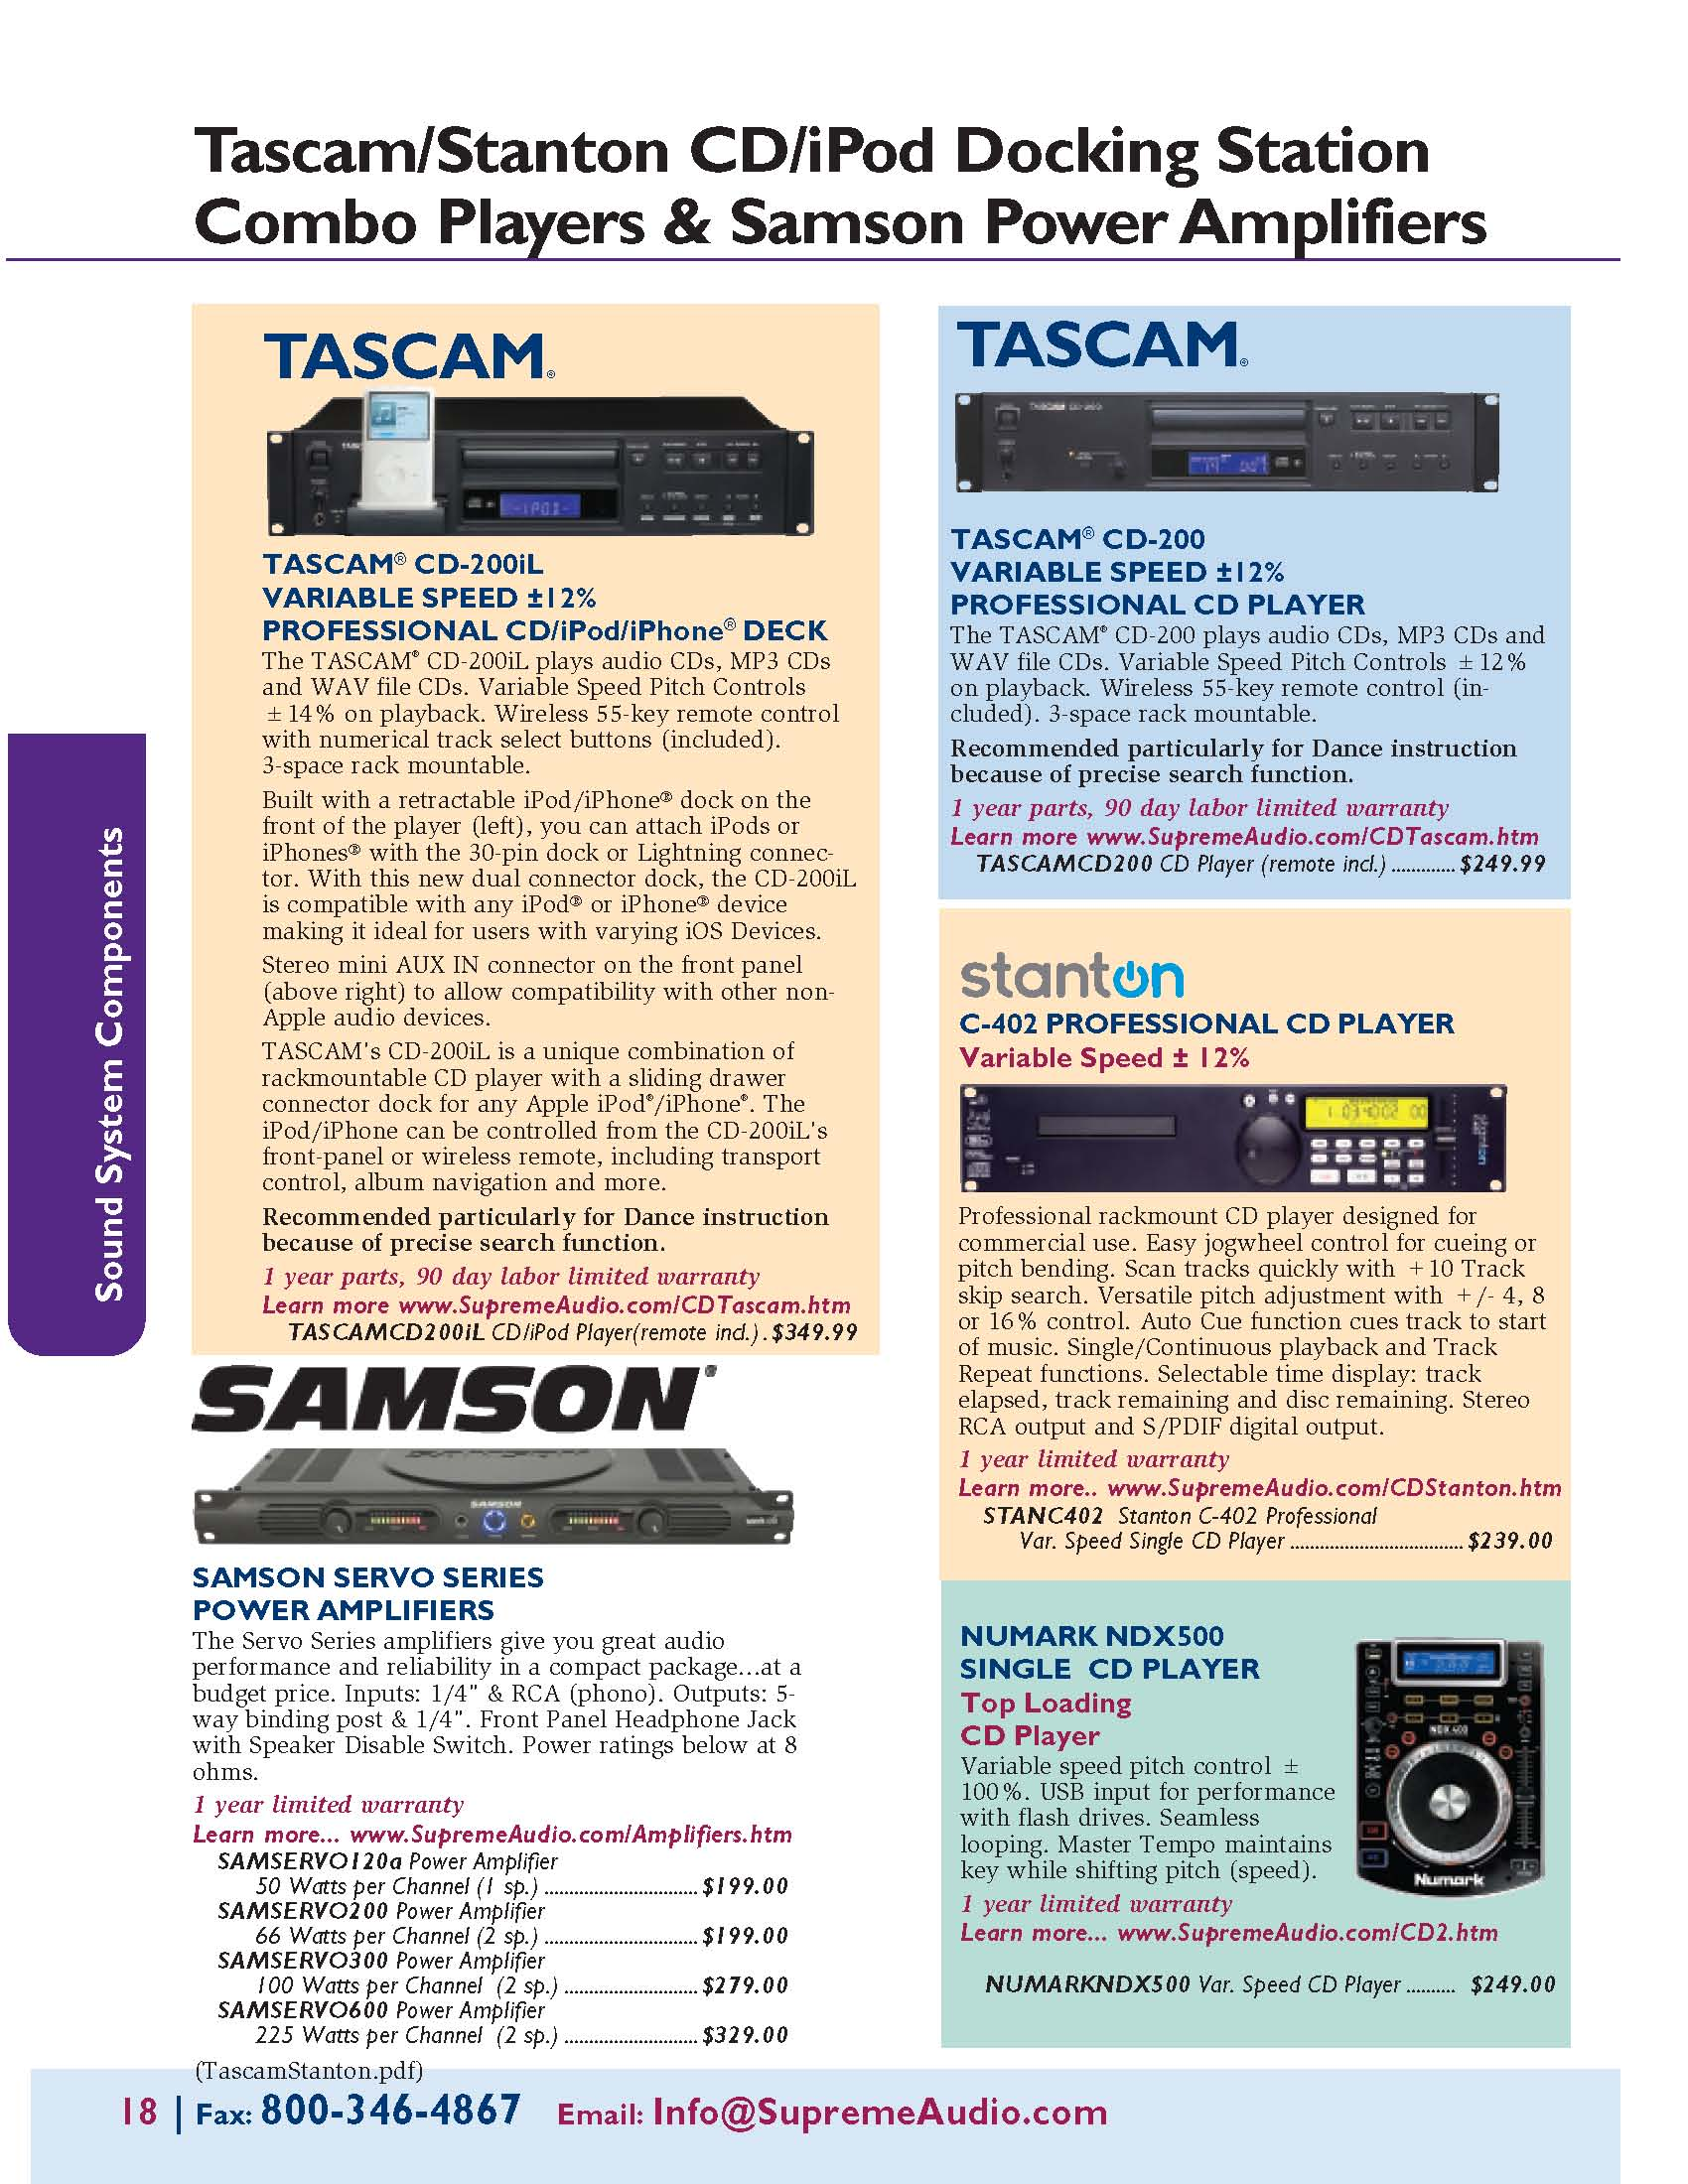 Tascam/Stanton CD/iPod Docking Station